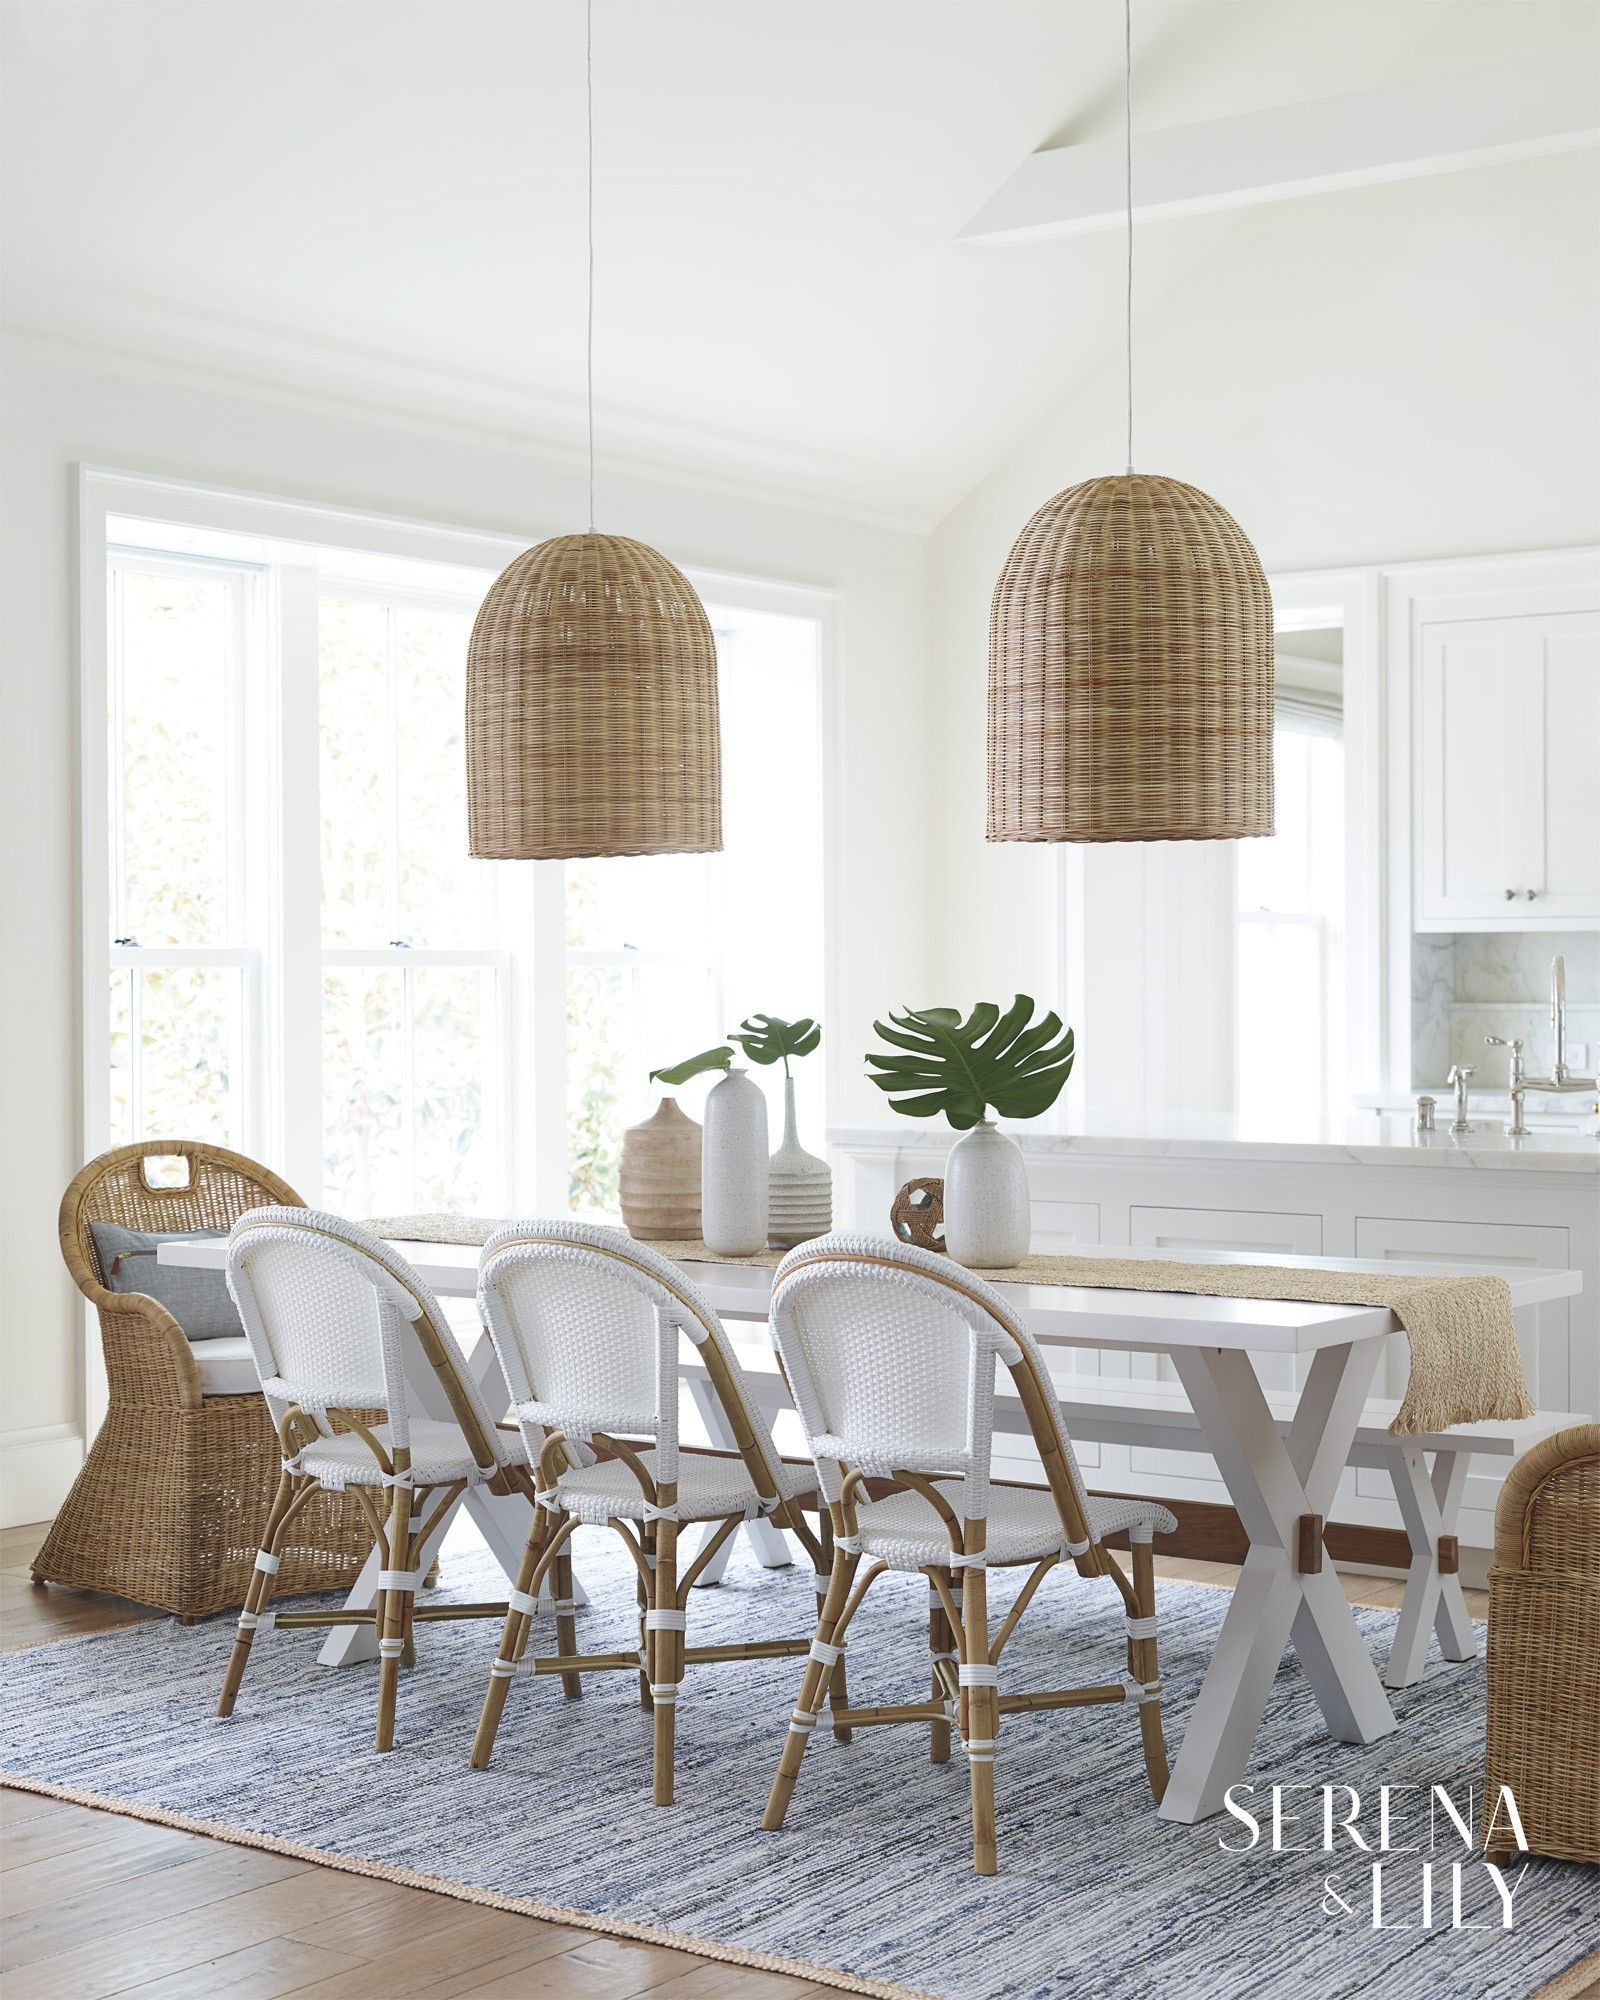 This White Dining Room Emanates Chic Beachy Vibes With Its French Bistro Chairs Rattan Light P Dining Room Design Dining Room Inspiration Coastal Living Rooms